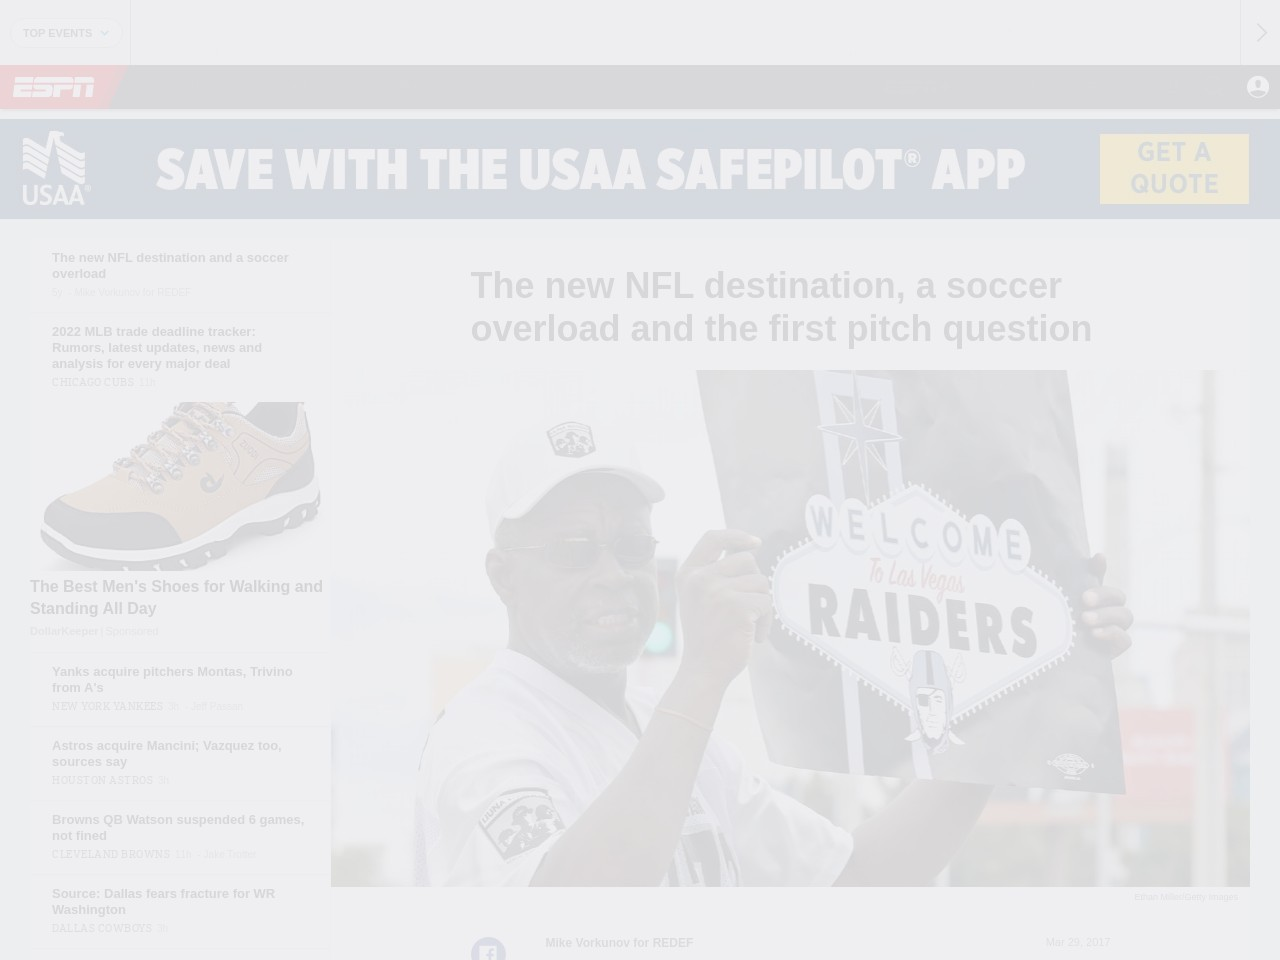 The new NFL destination and a soccer overload